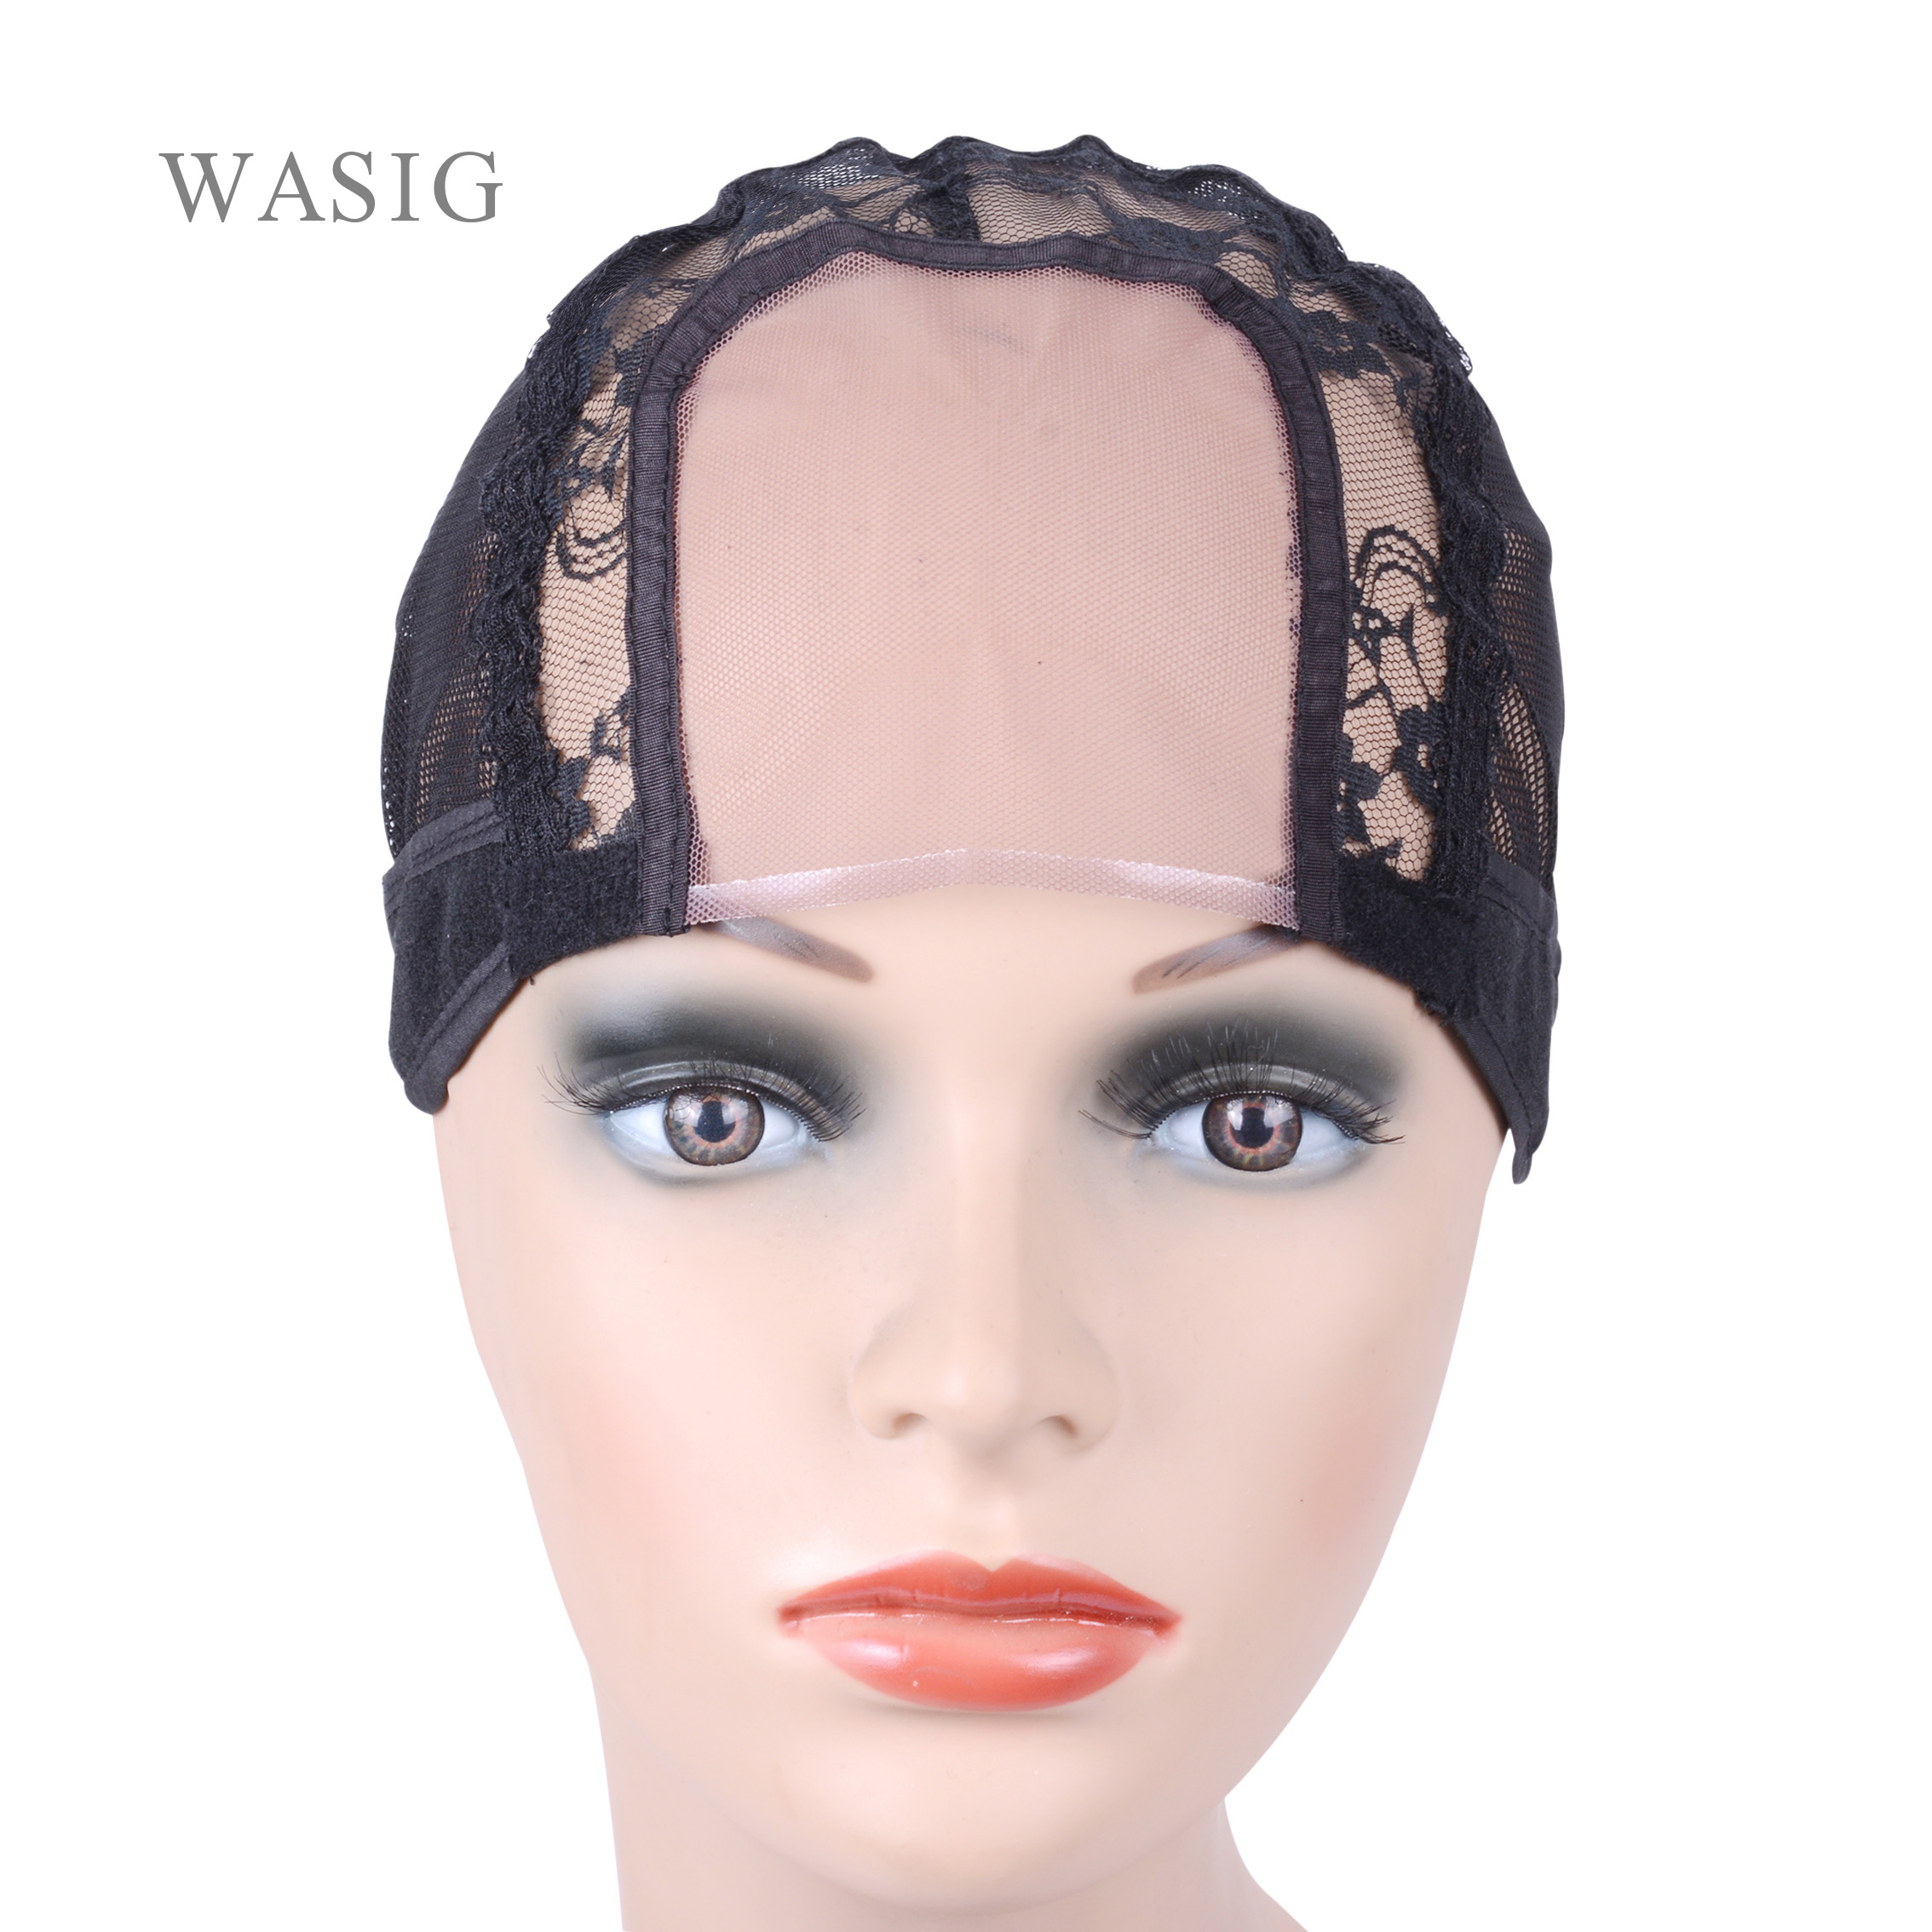 3.5 Inch X 3.5 Inch U Part Wig Cap For Making Wigs With Adjustable Strap On The Back Swiss Lace Hairnets Weaving Wig Cap